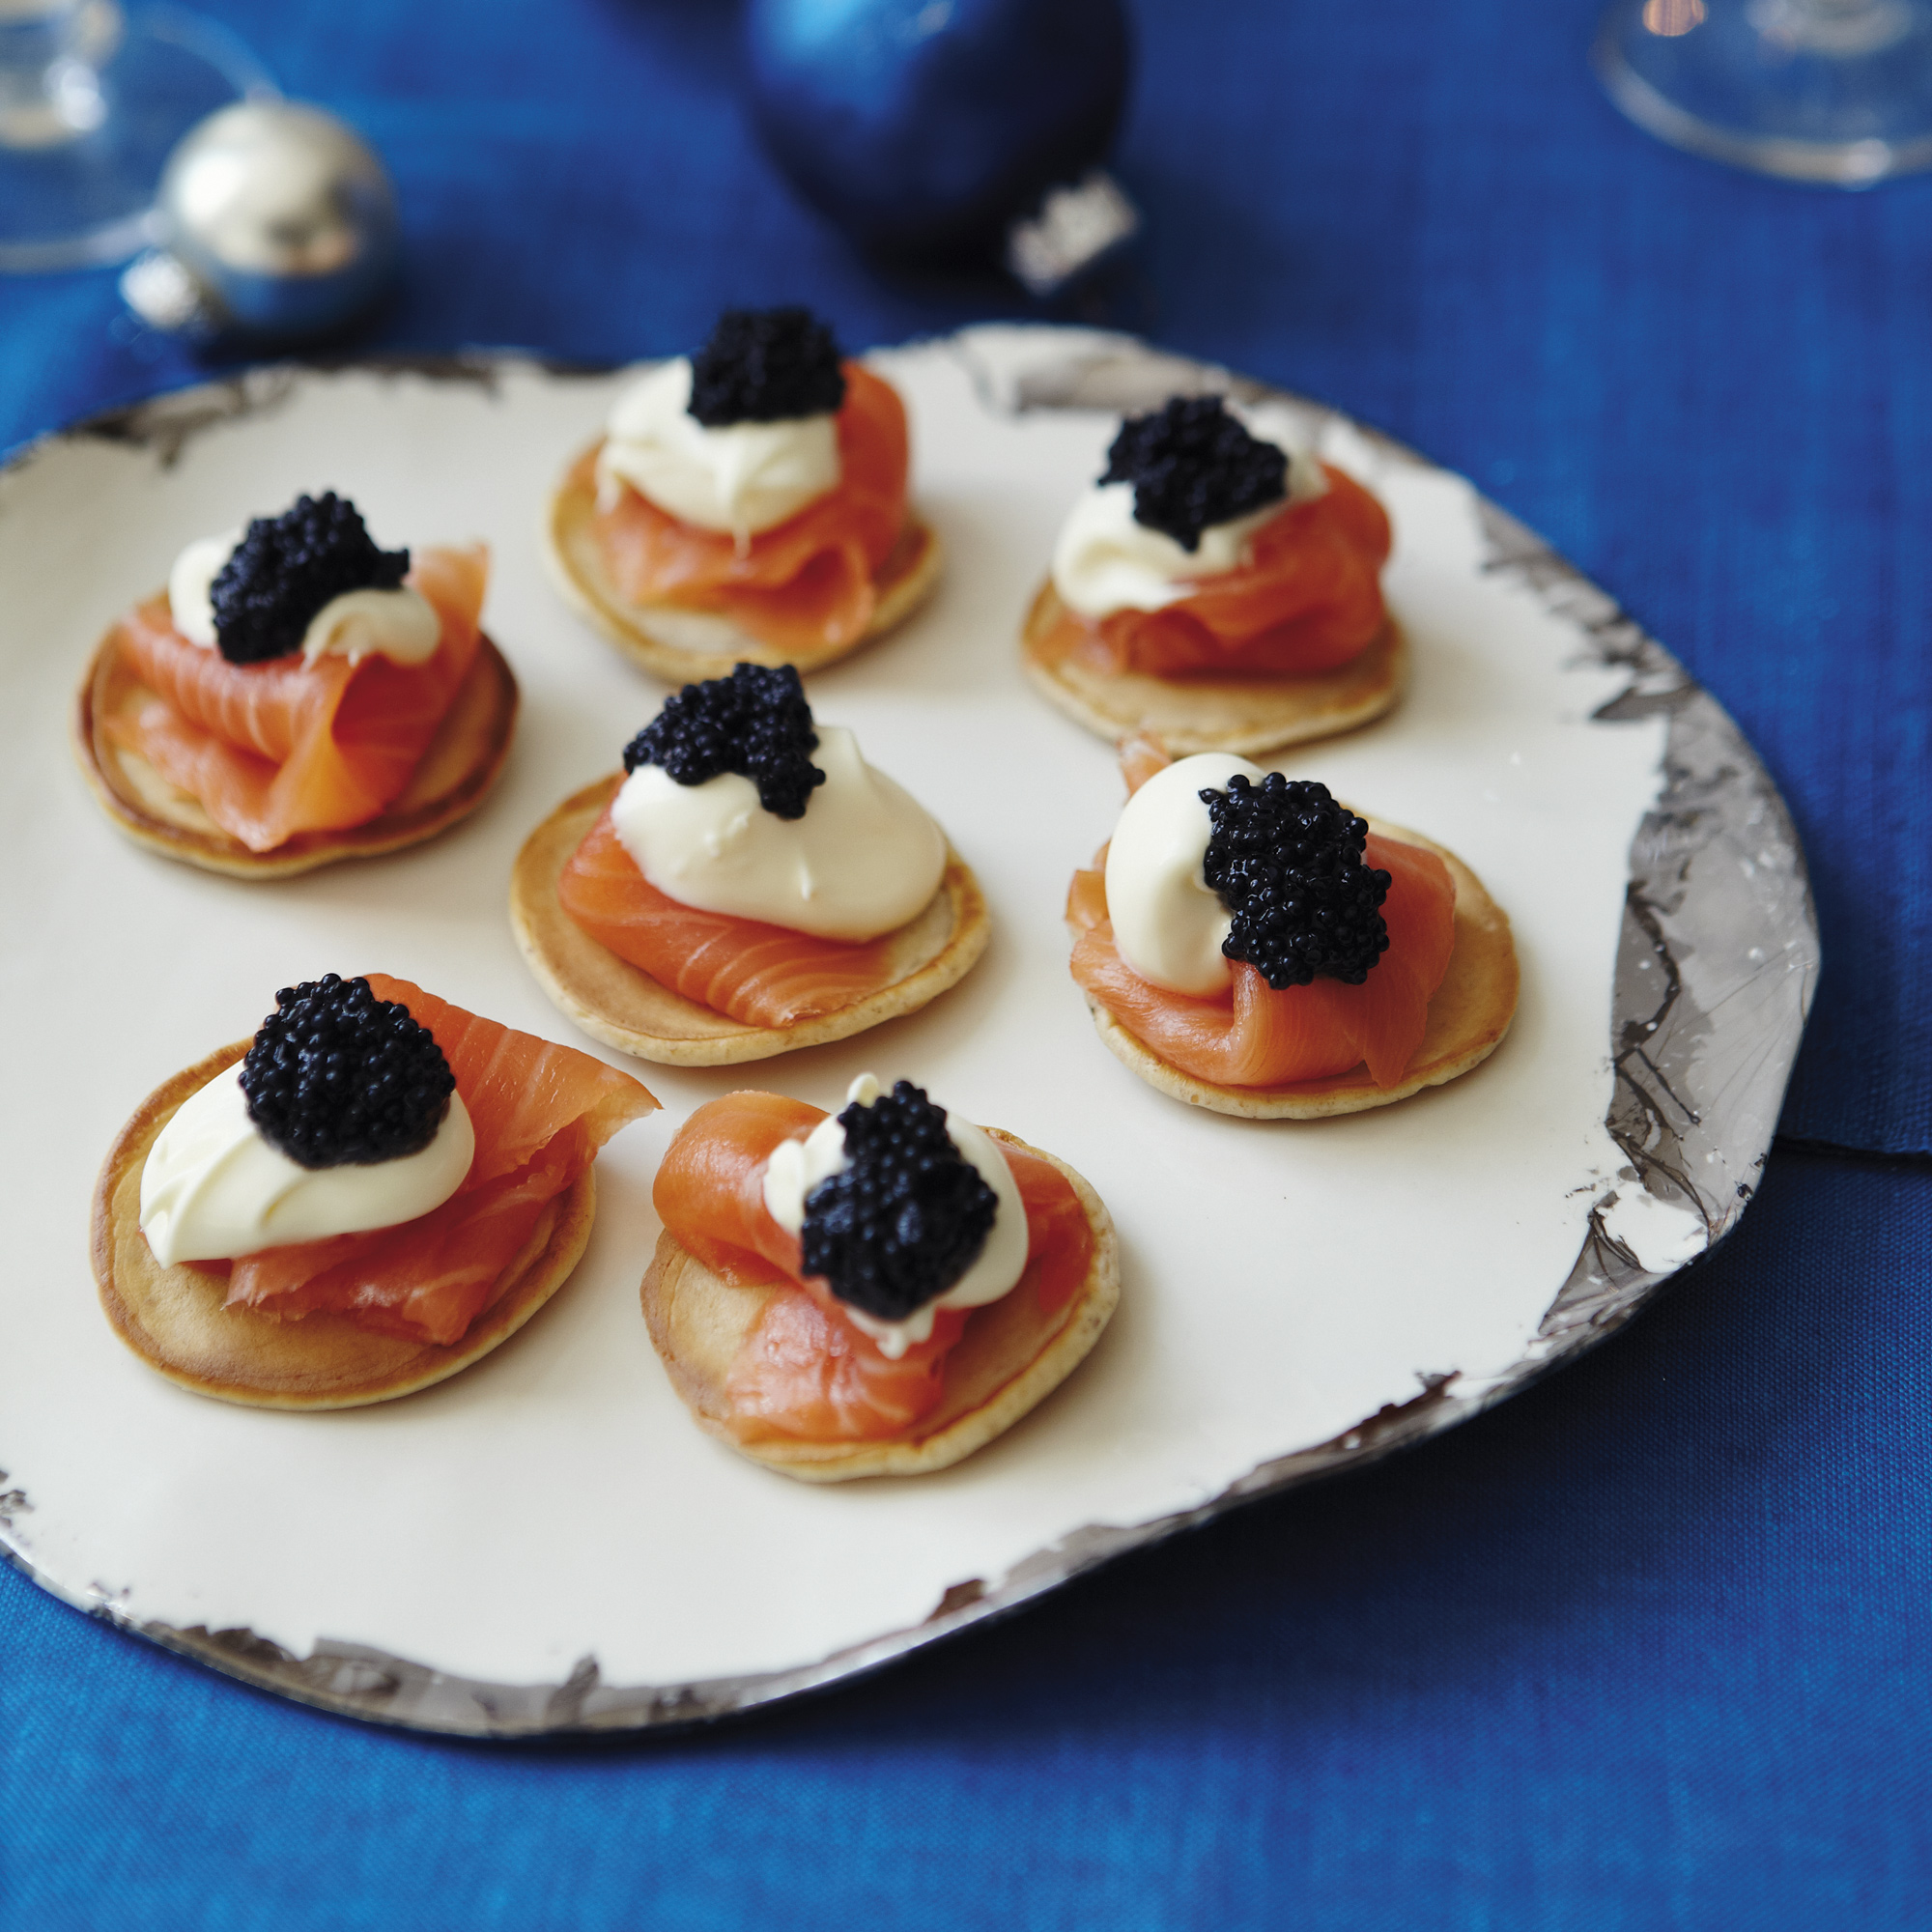 Have a go at making these tasty smoked salmon pancakes using sour cream